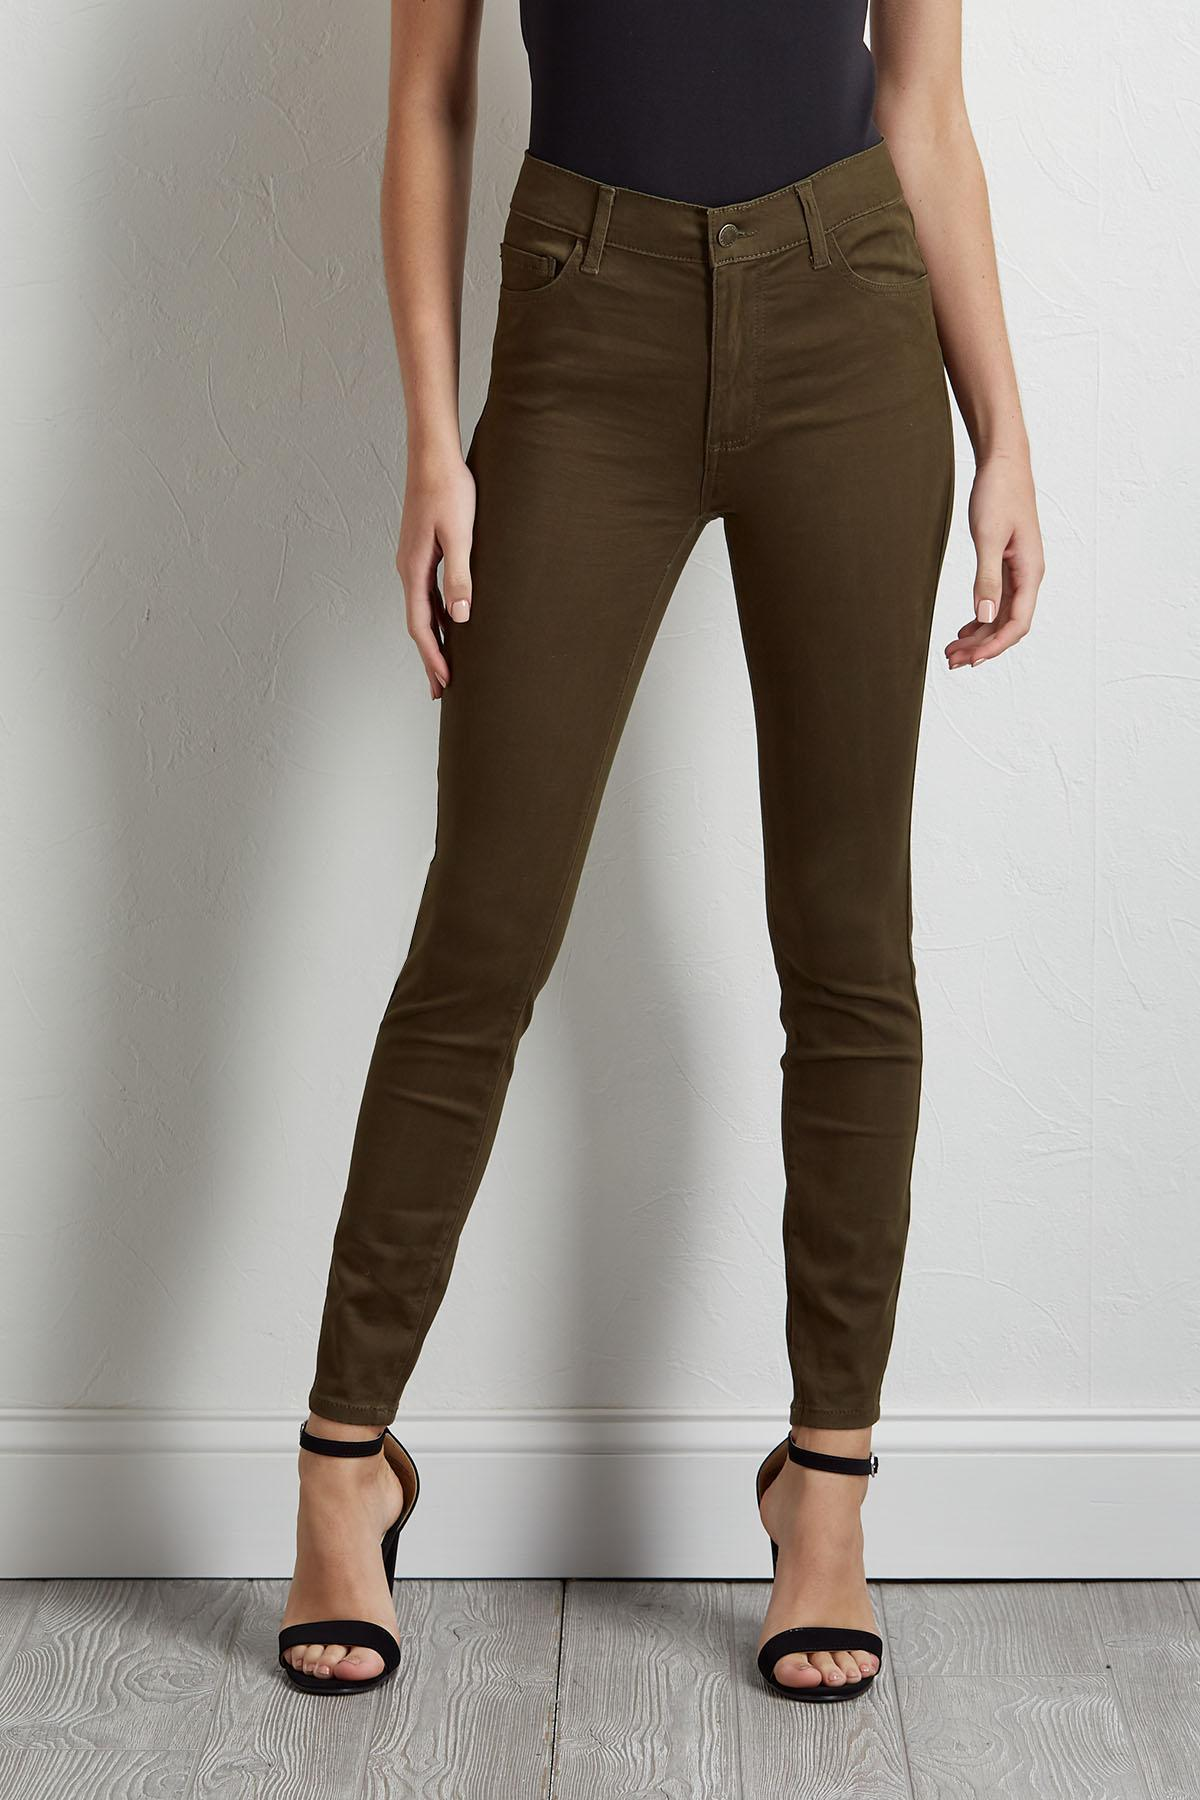 Solid Colored Skinny Pants